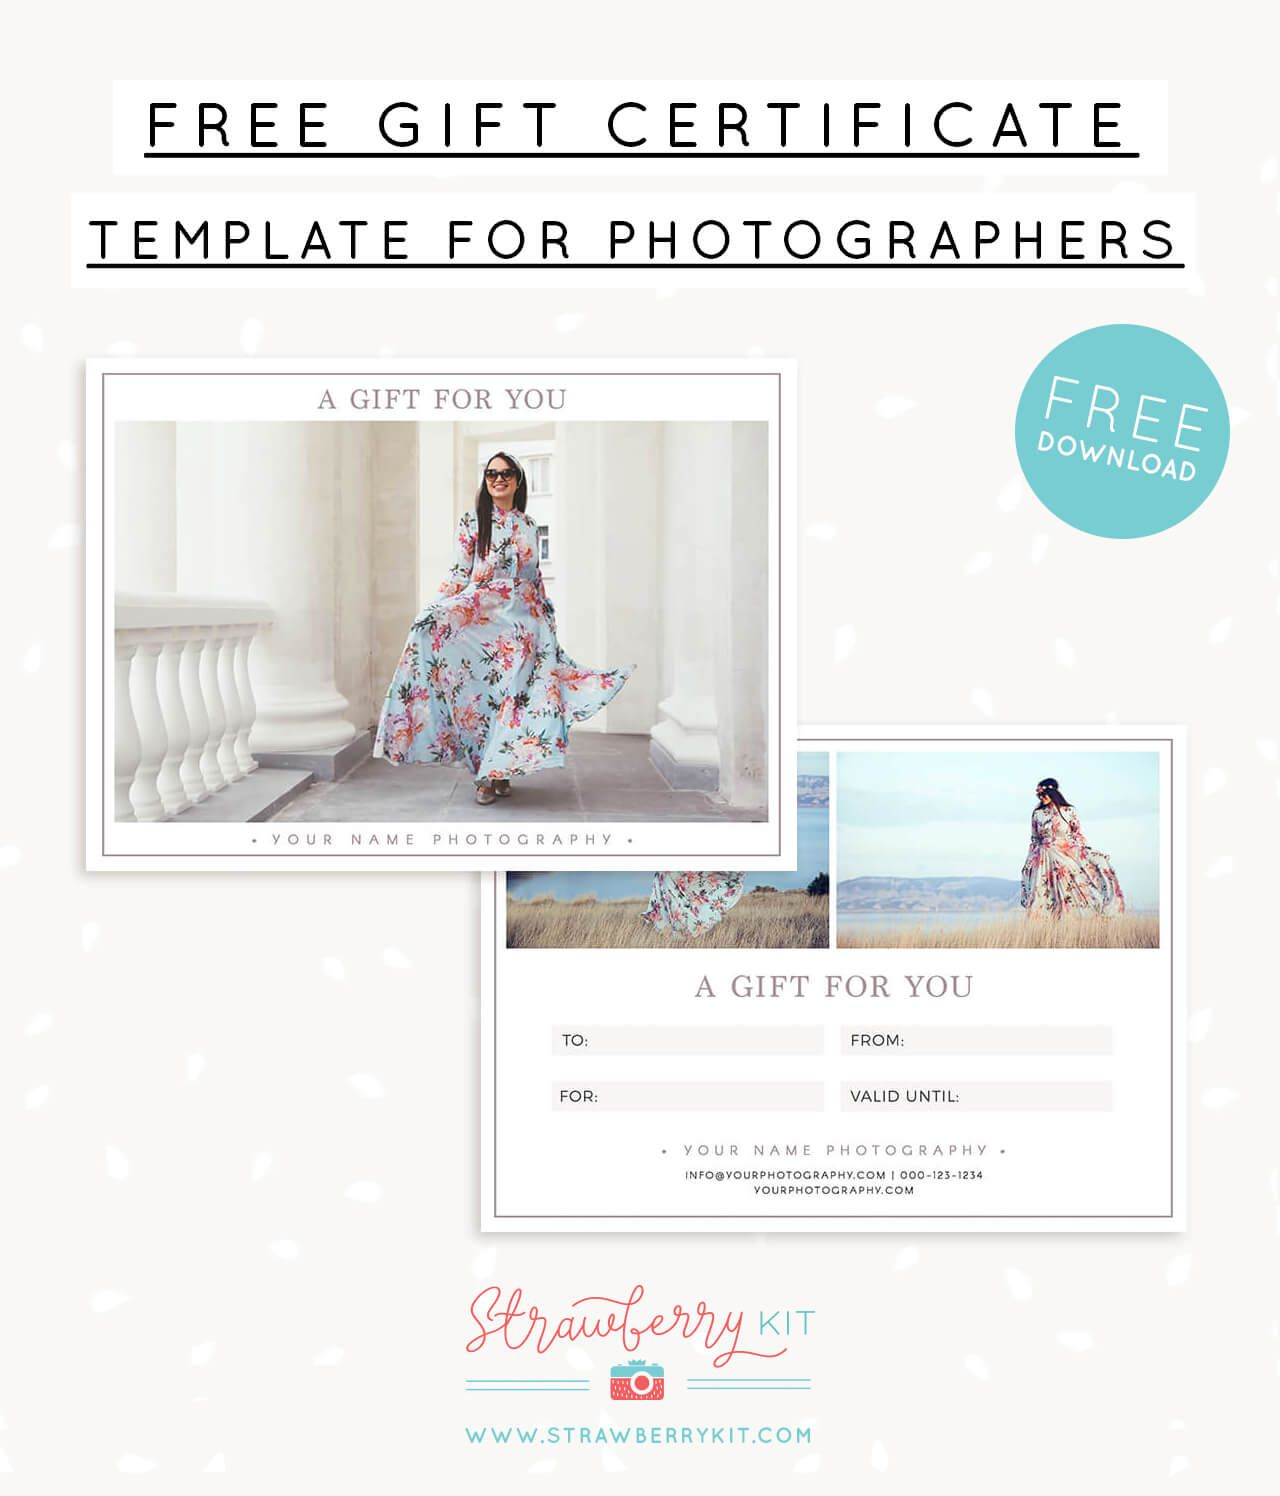 006 Breathtaking Photography Gift Certificate Template Photoshop Free Example Full